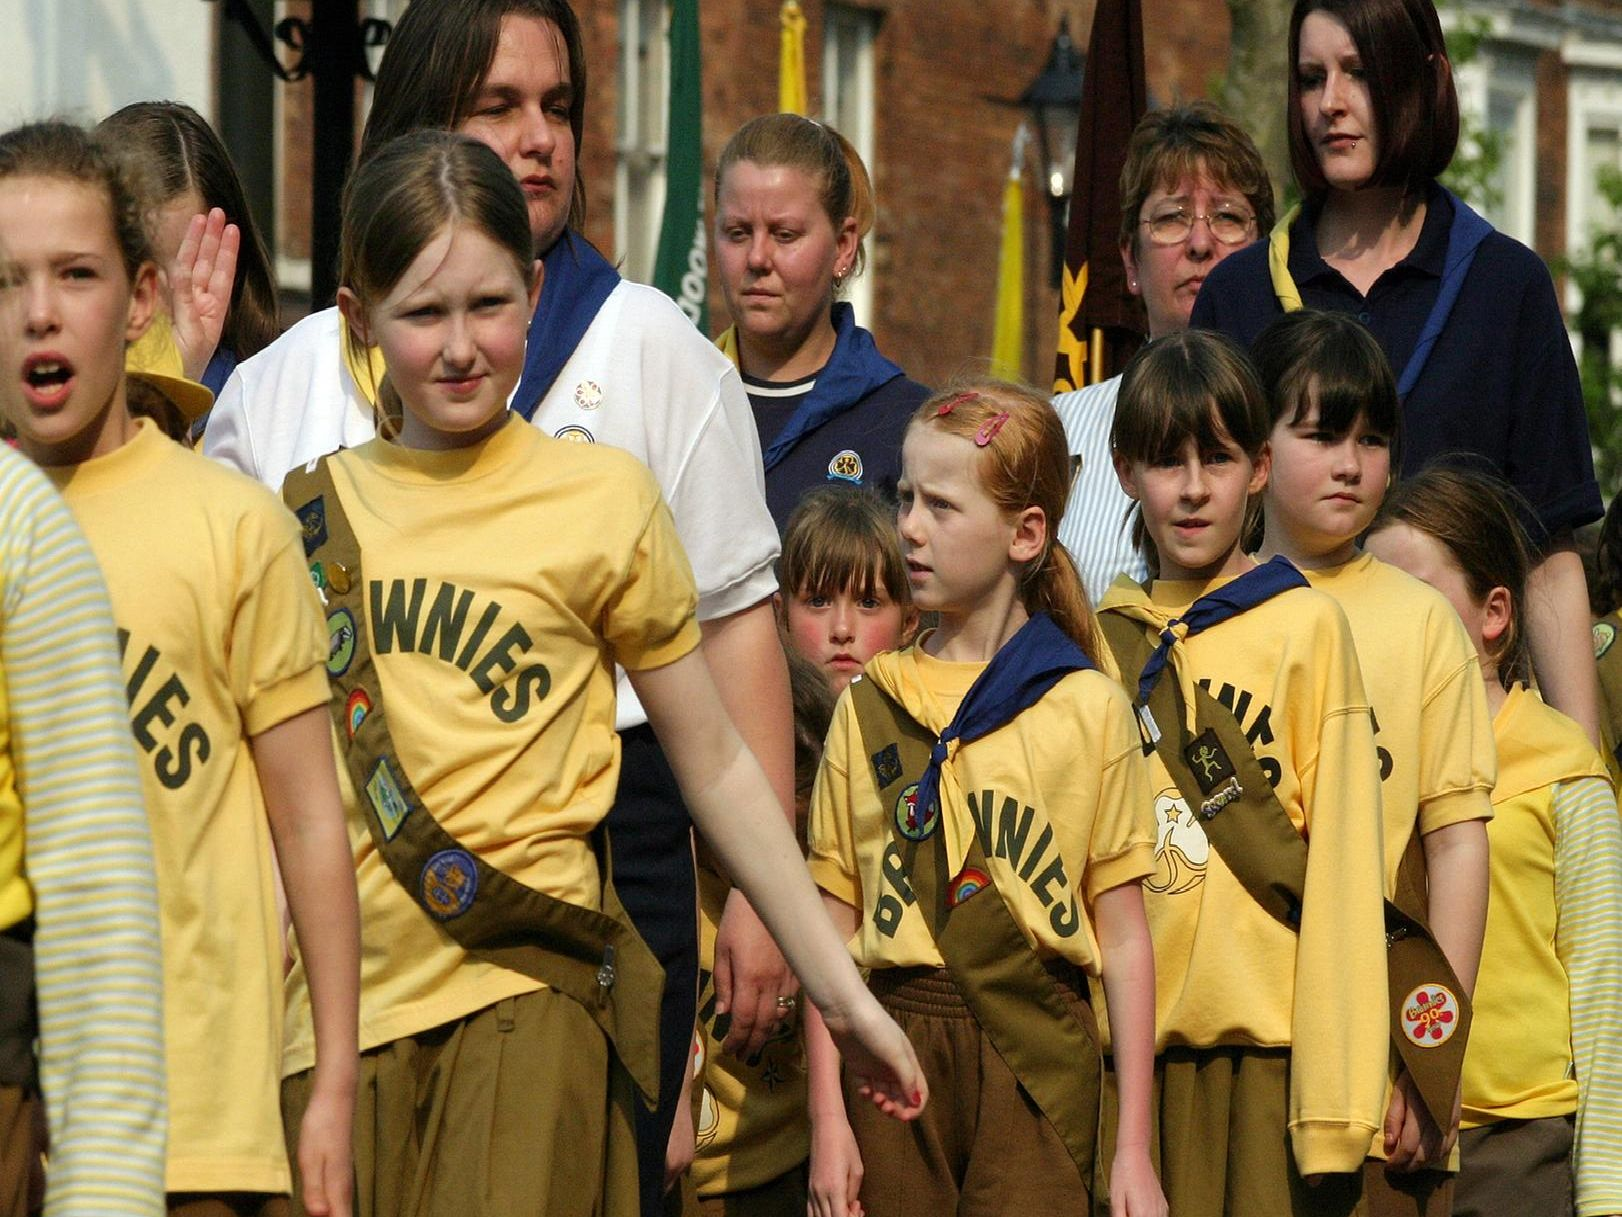 2004: A wonderful close-up of the Brownies joining in the Parade for St Georges Day. Looks like one girl is citing the Brownie Promise.